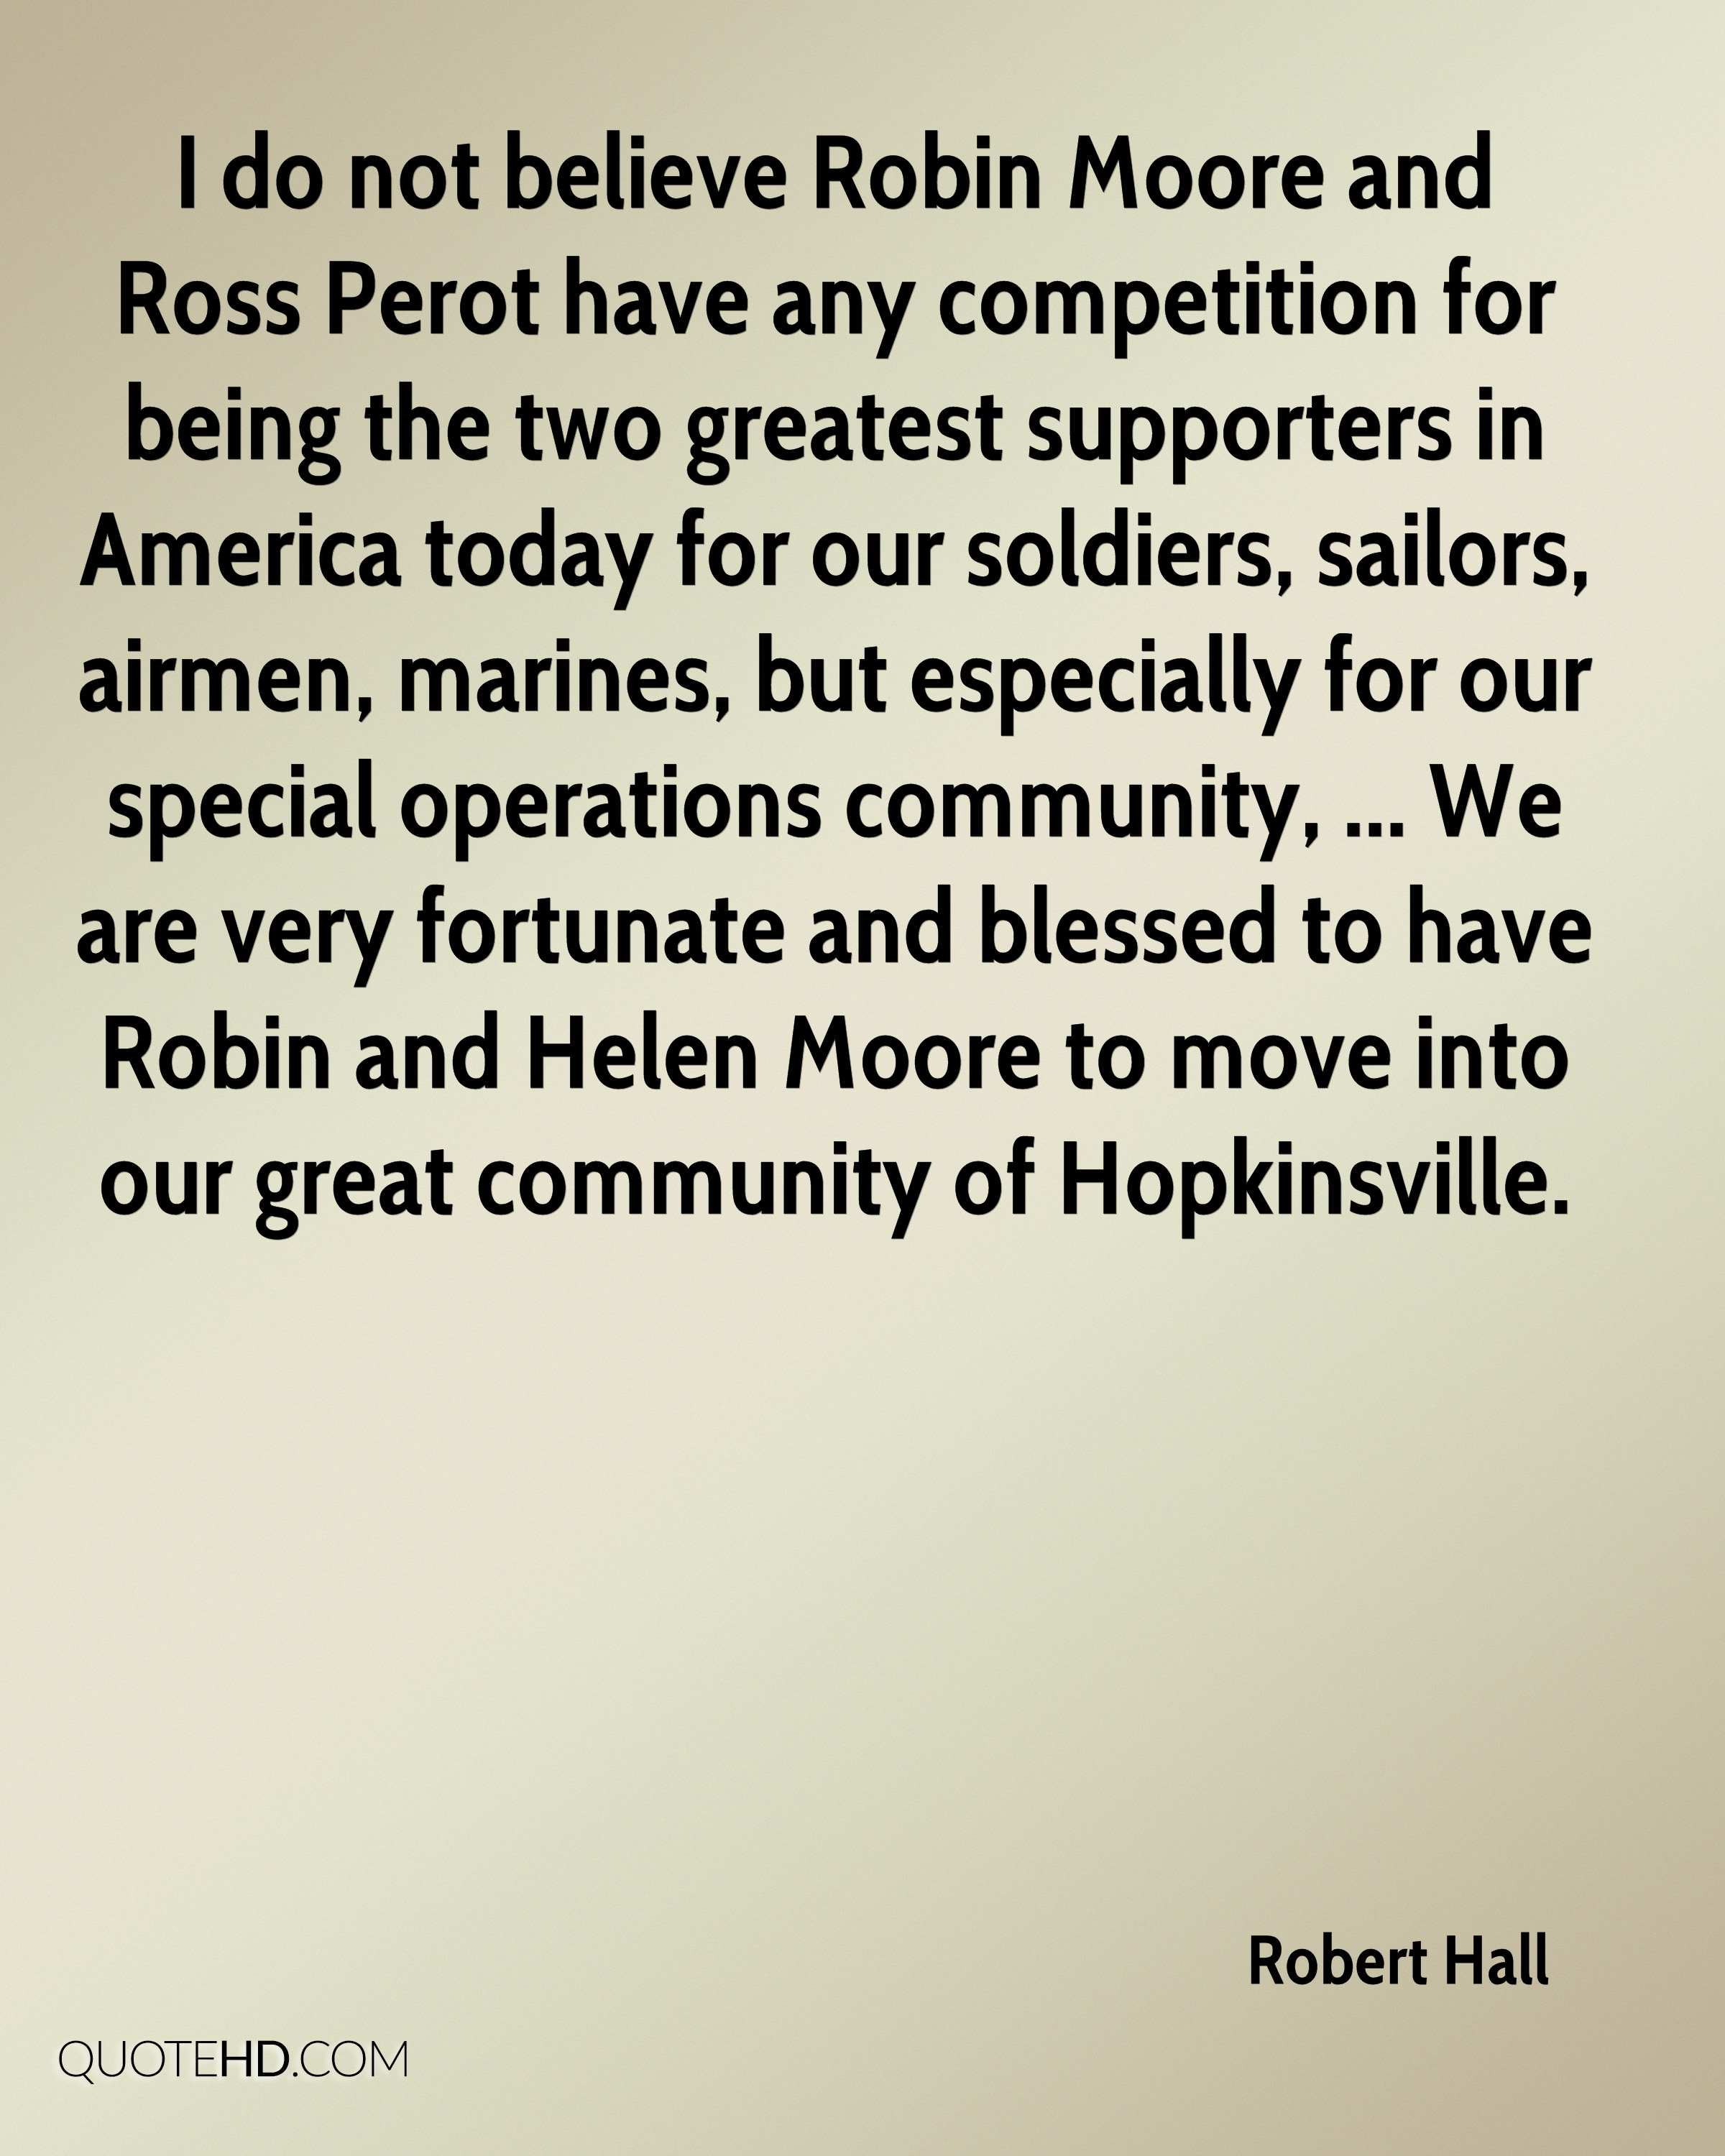 I do not believe Robin Moore and Ross Perot have any competition for being the two greatest supporters in America today for our soldiers, sailors, airmen, marines, but especially for our special operations community, ... We are very fortunate and blessed to have Robin and Helen Moore to move into our great community of Hopkinsville.